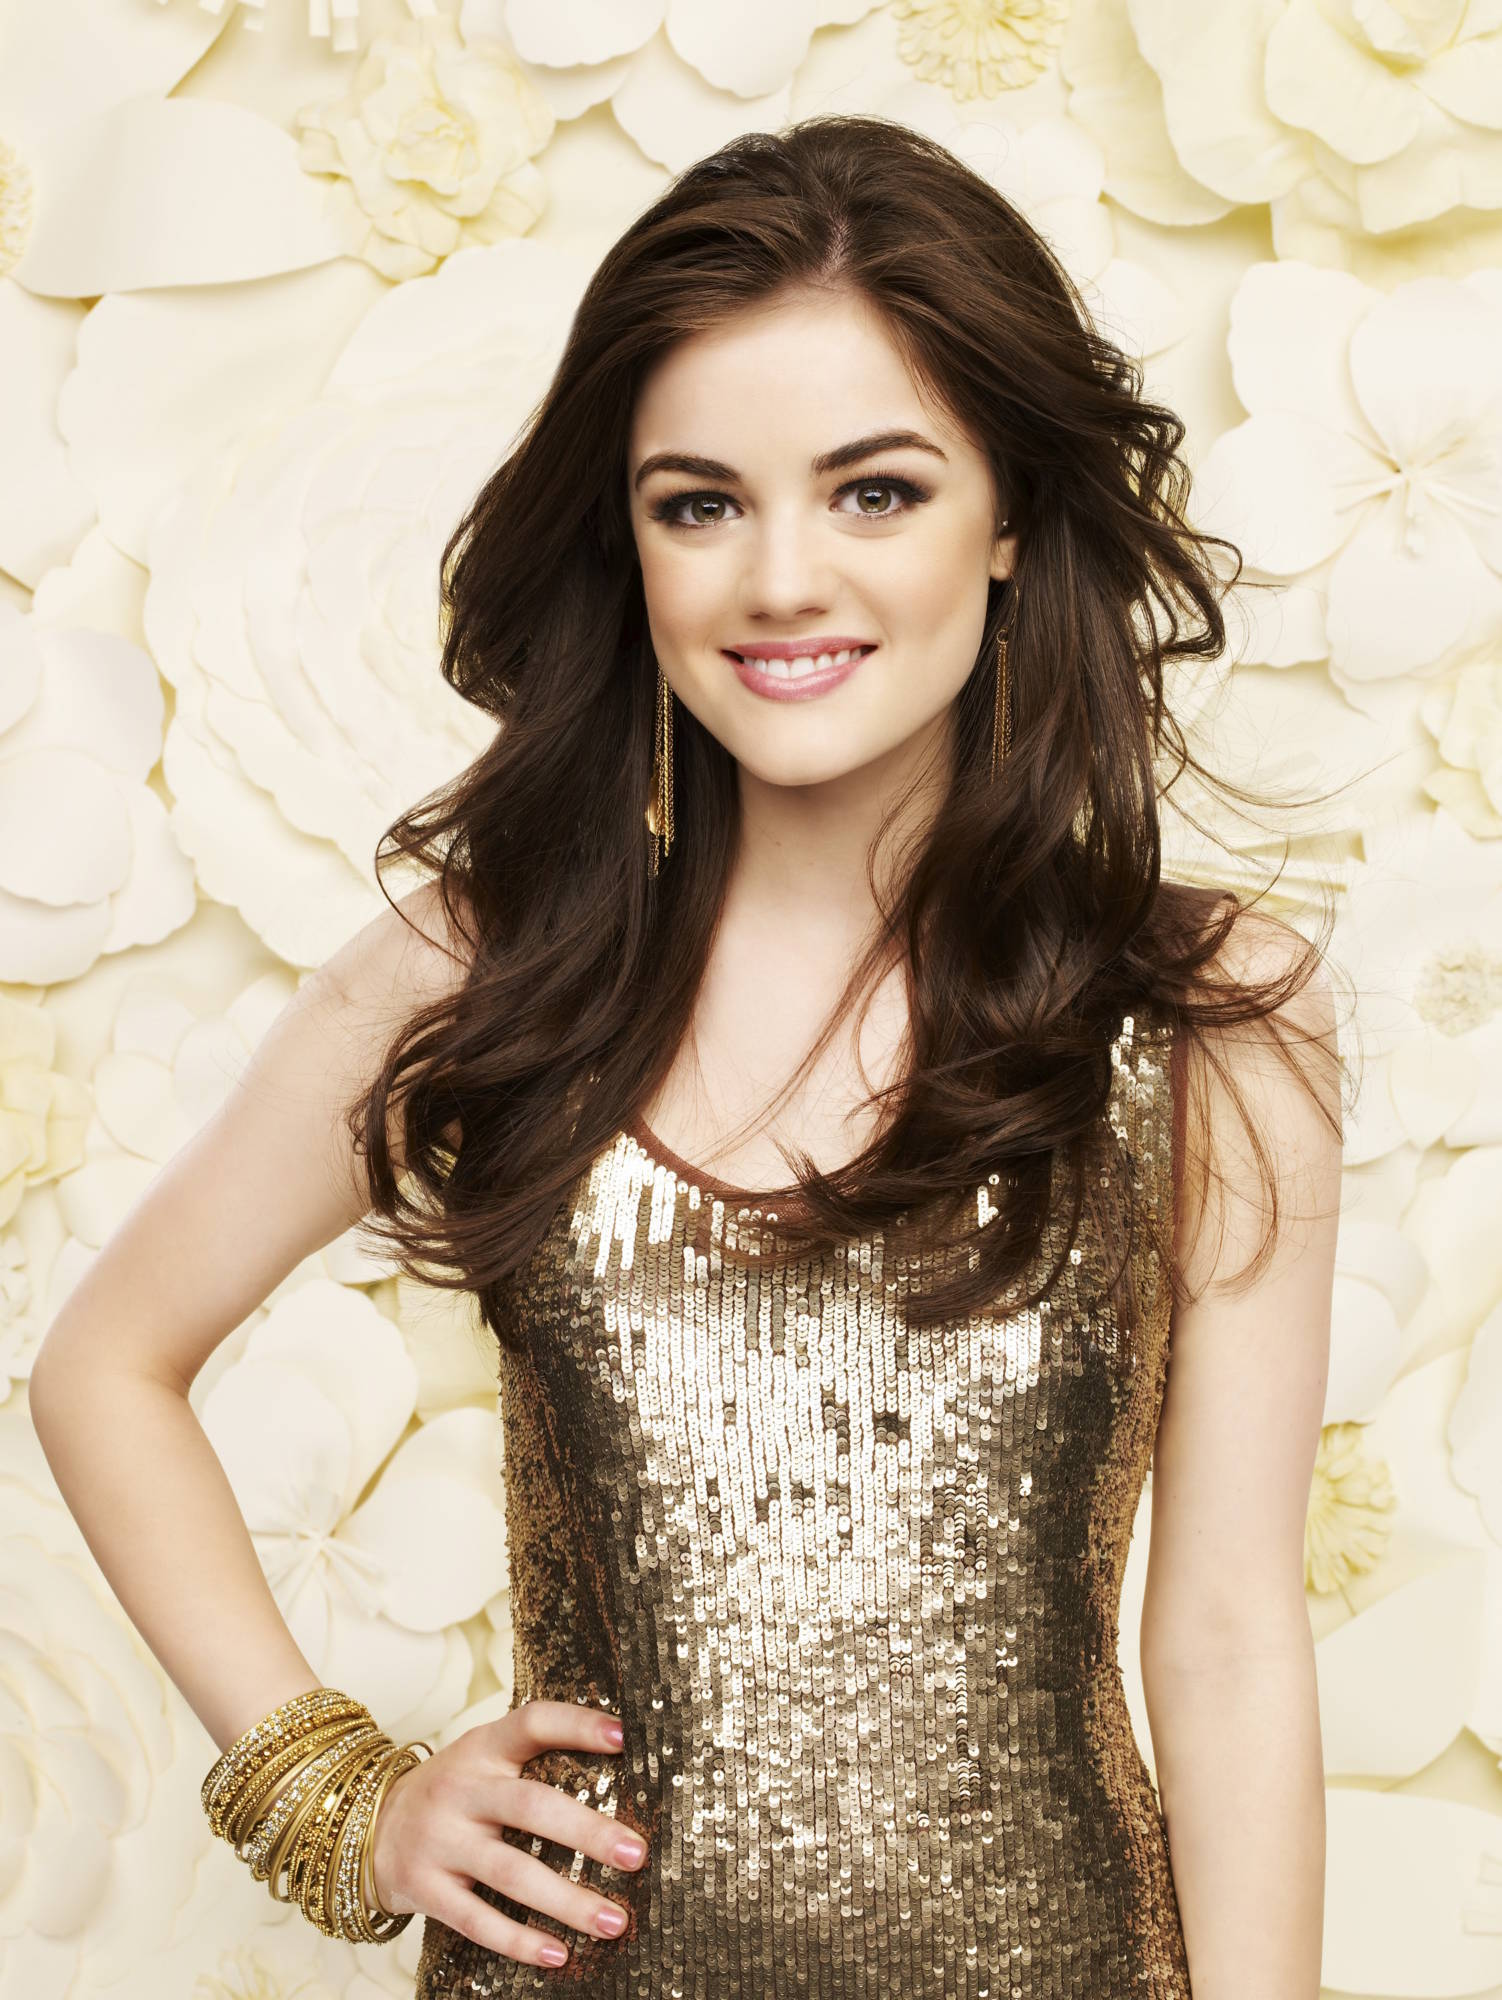 Lucy-Hale-New-Pretty-Little-Liars-Photos